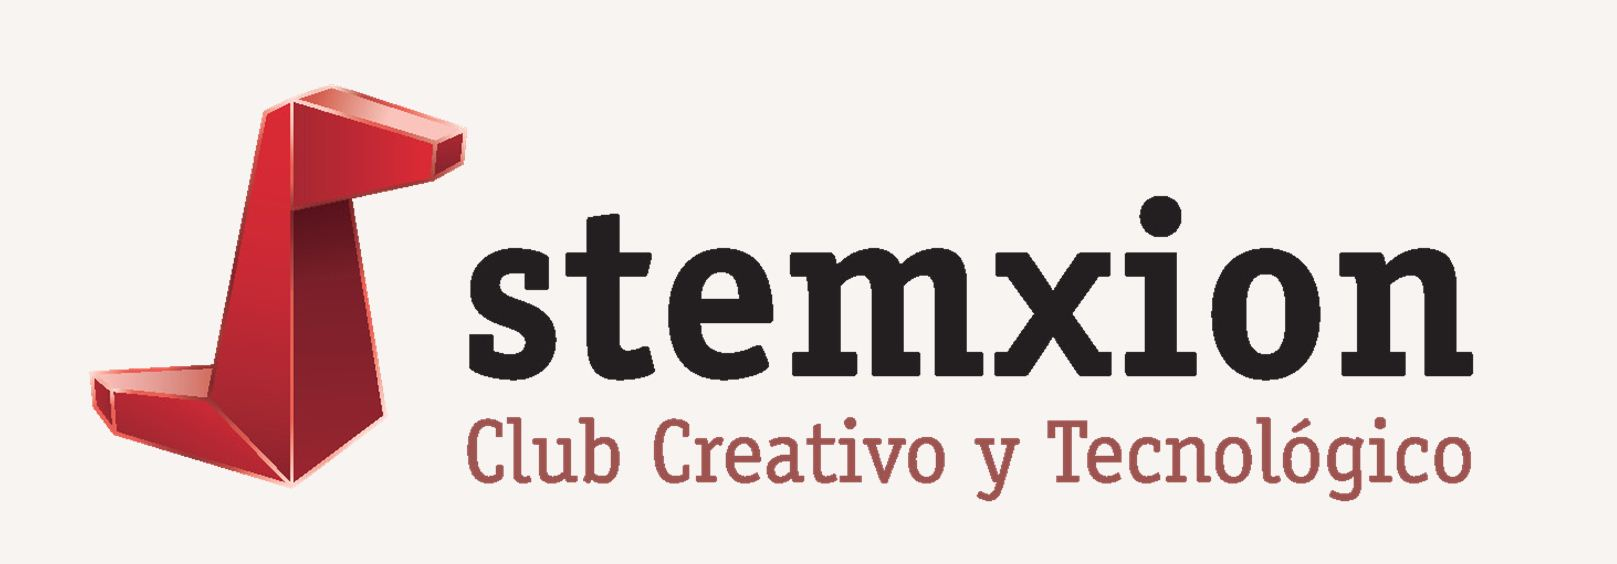 03 logo stemxion fondoweb